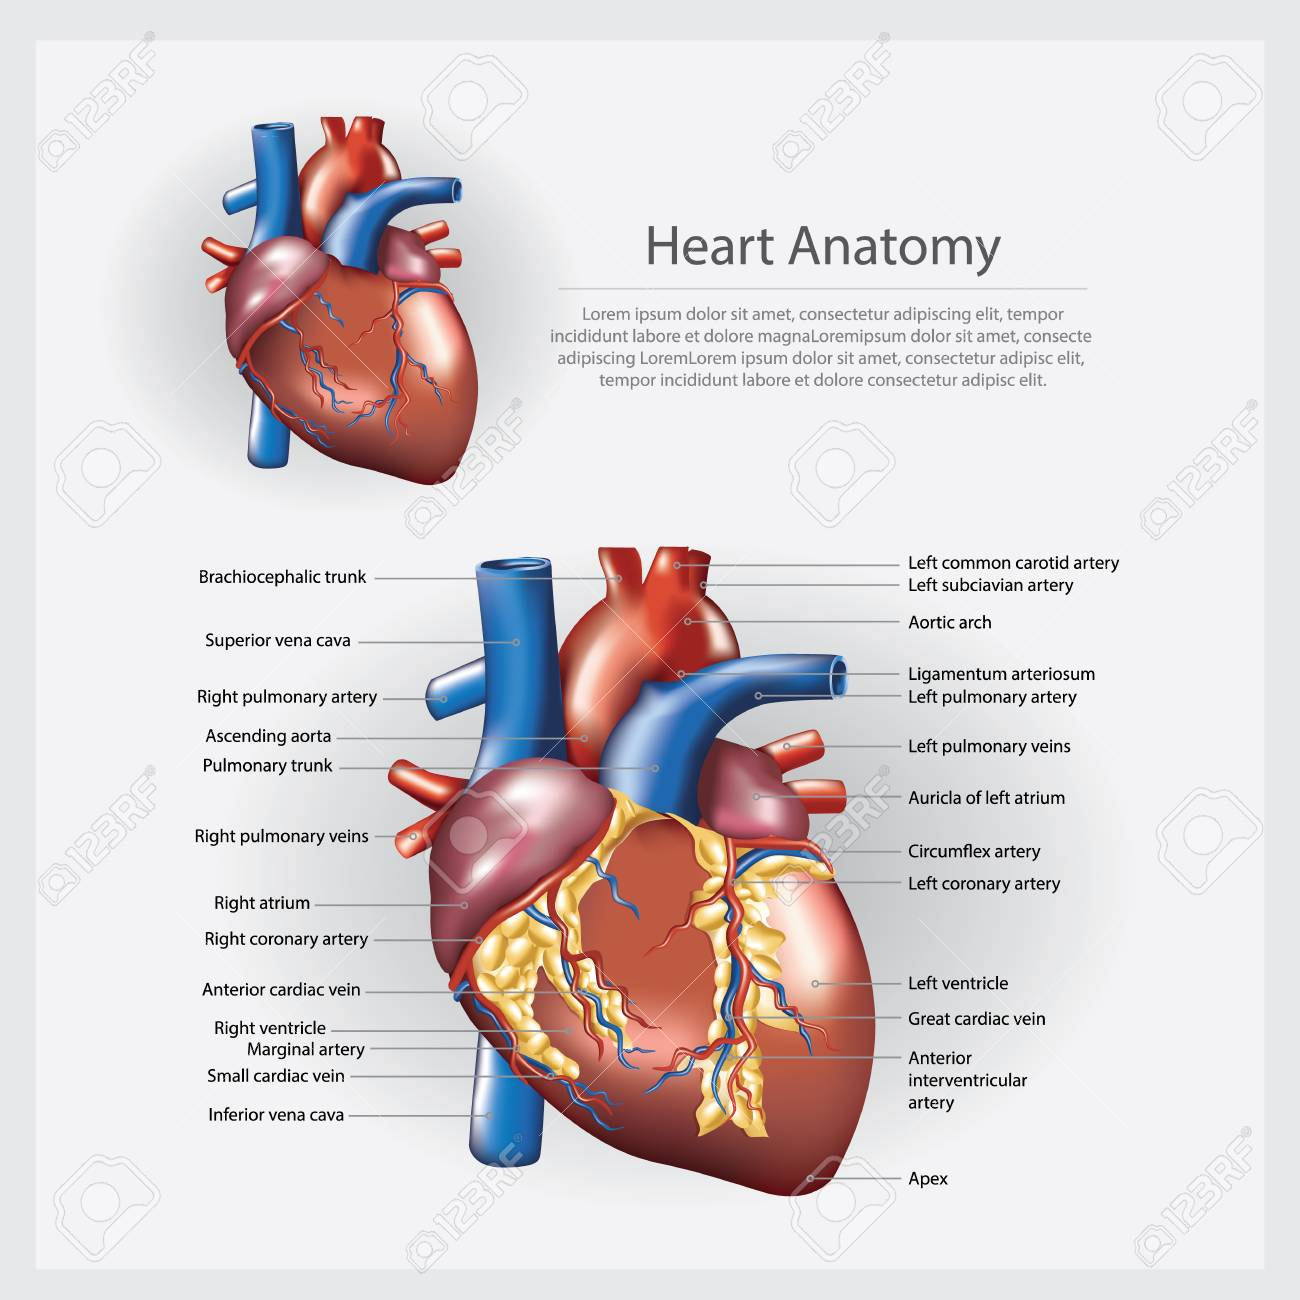 Heart Anatomy Vector Illustration Royalty Free Cliparts, Vectors ...